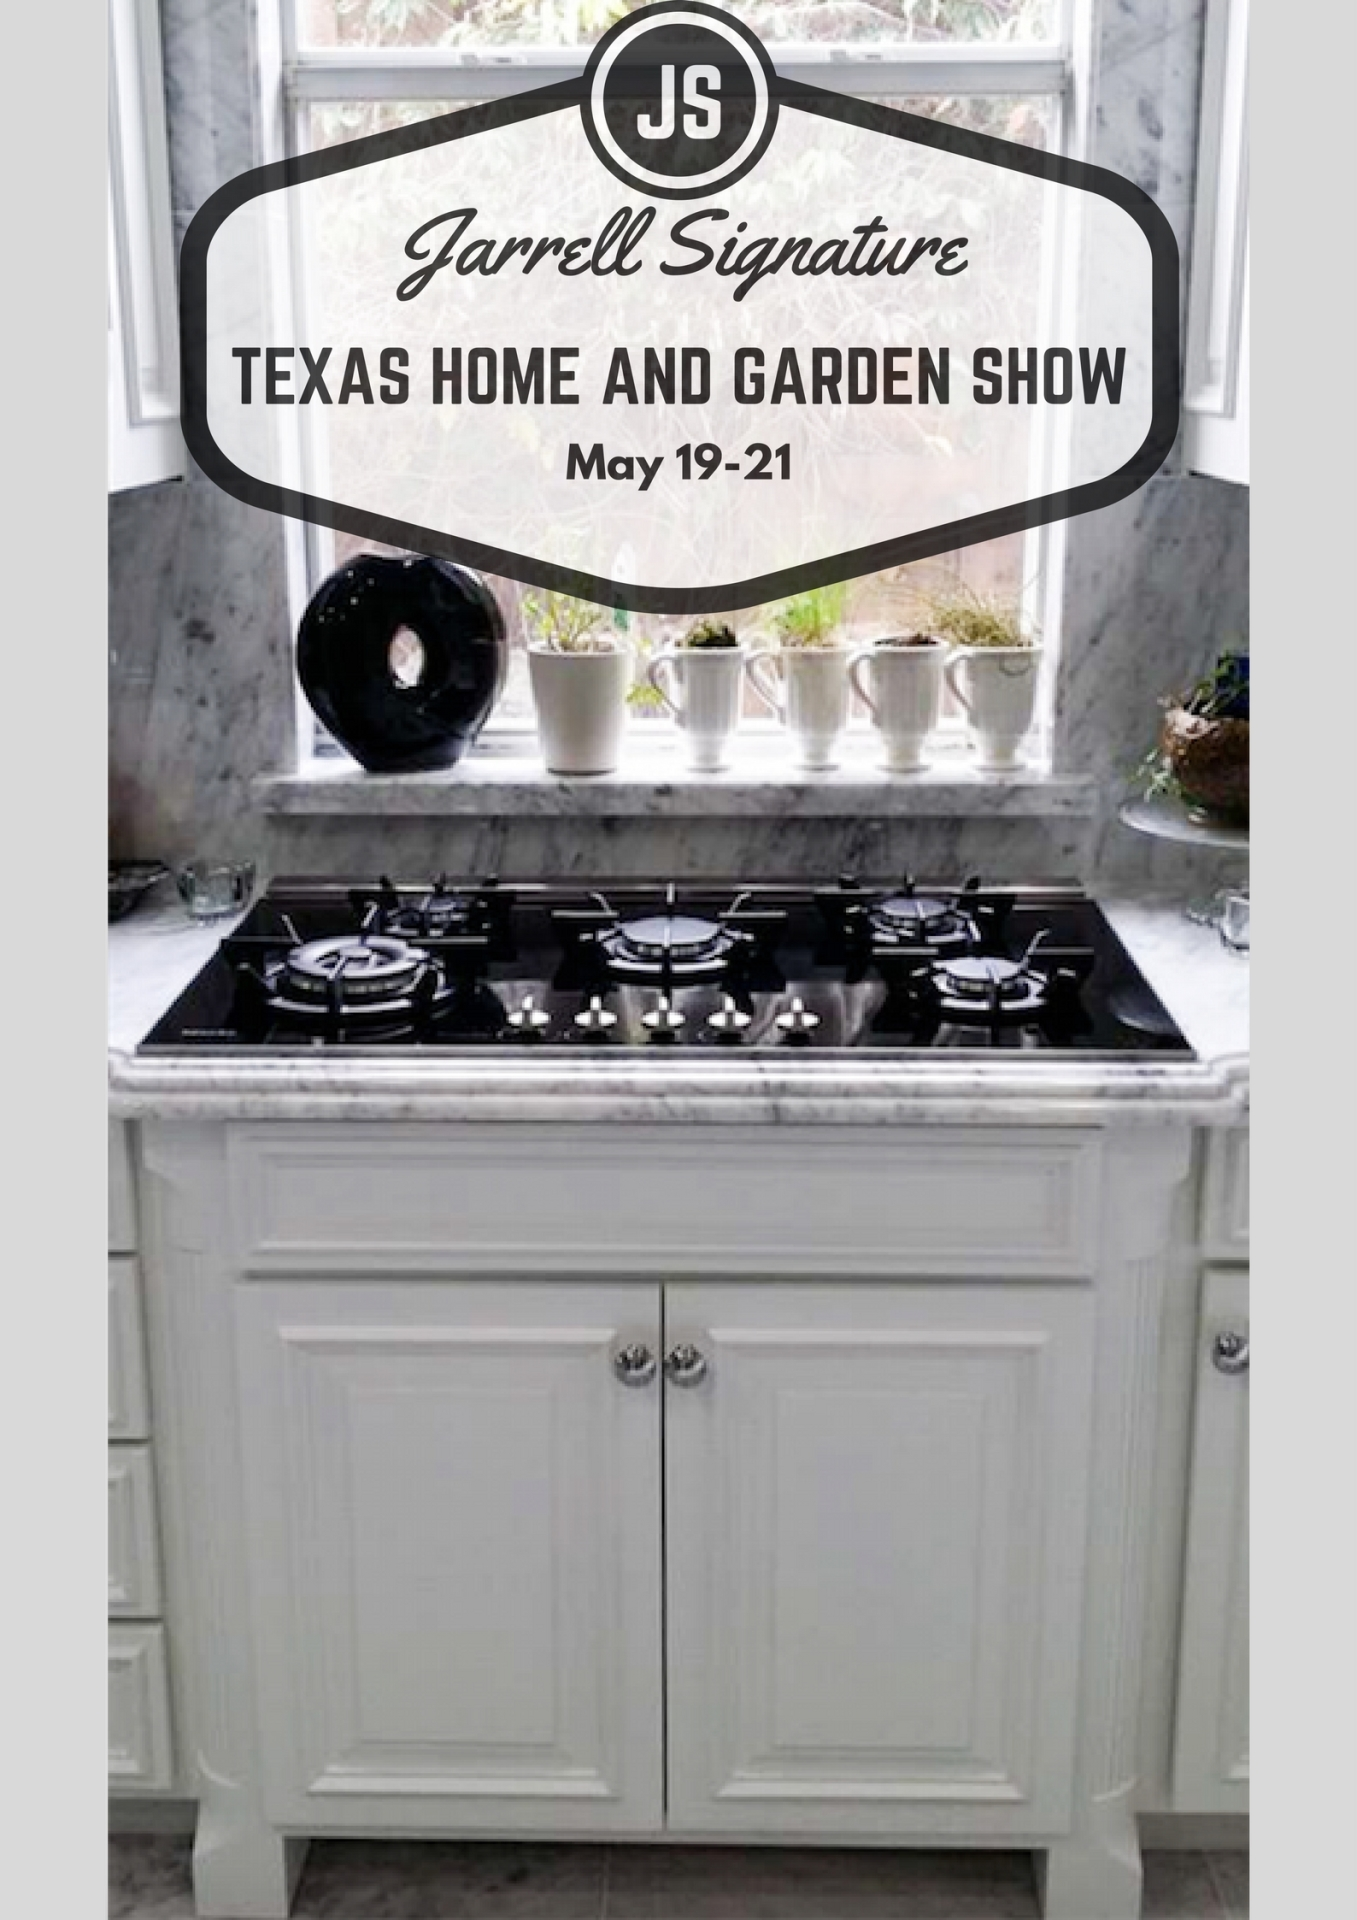 Jarrell Signature at the Fort Worth Home and Garden Show